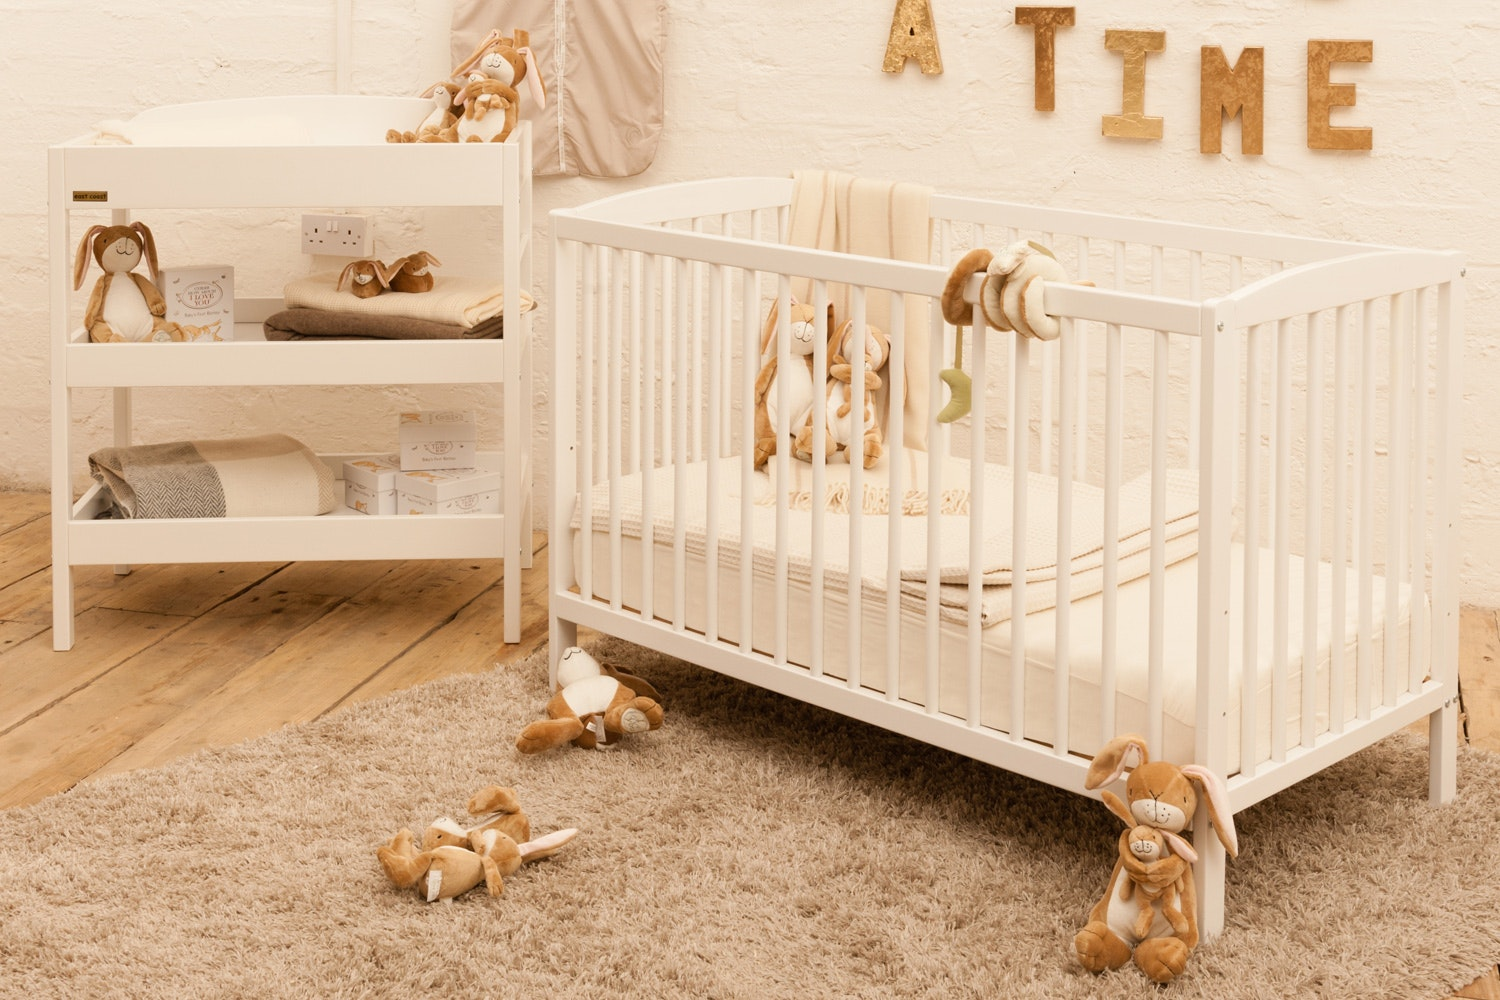 Baby Bumble Nursery Bundle with Mattress